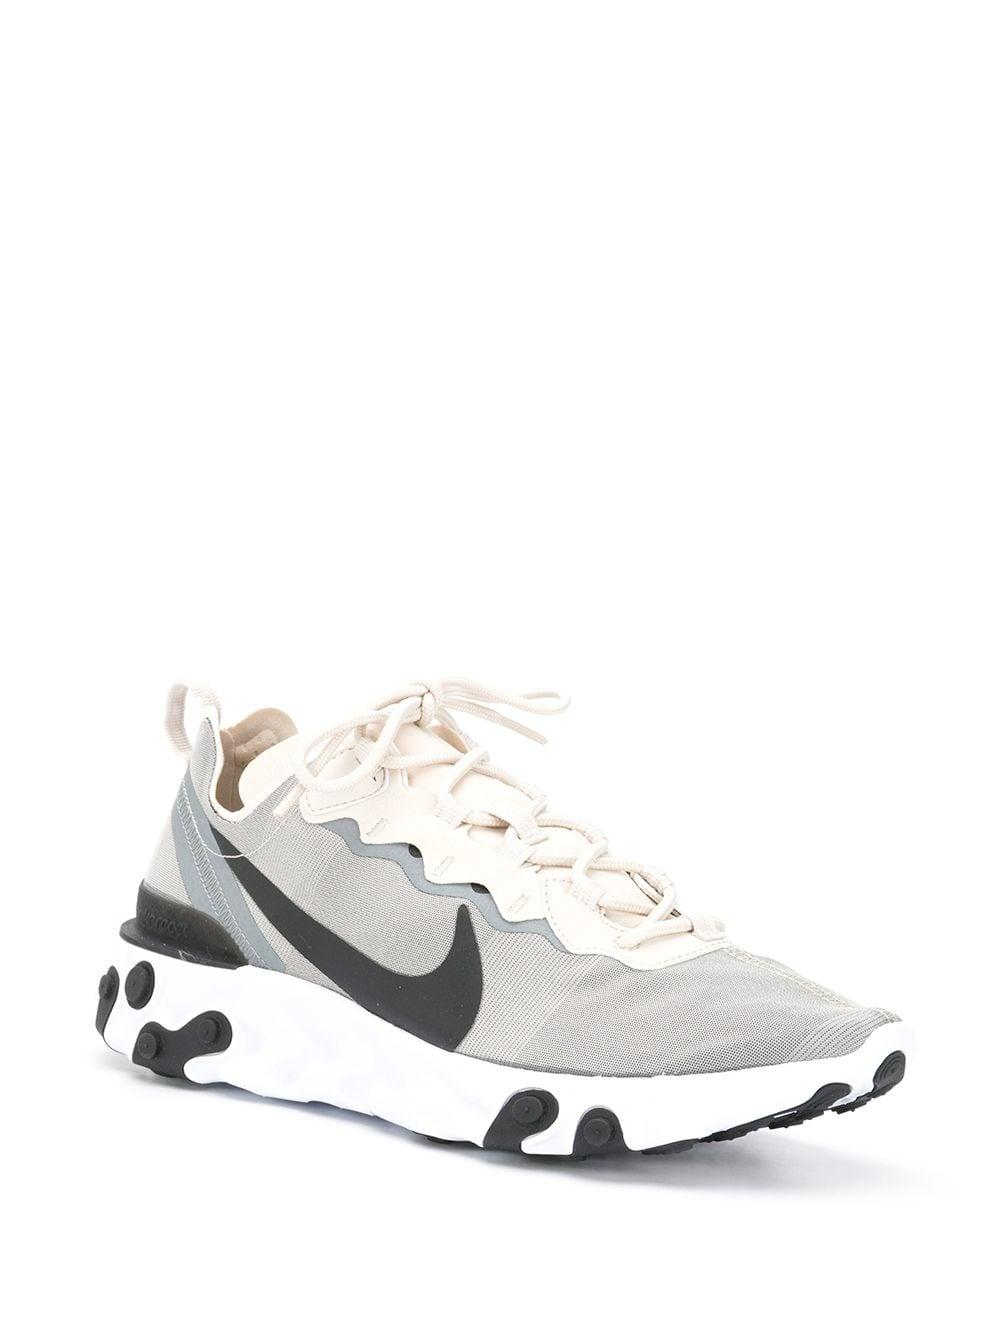 9762575de183 Lyst - Nike React Element 55 Sneakers in Gray - Save 14%